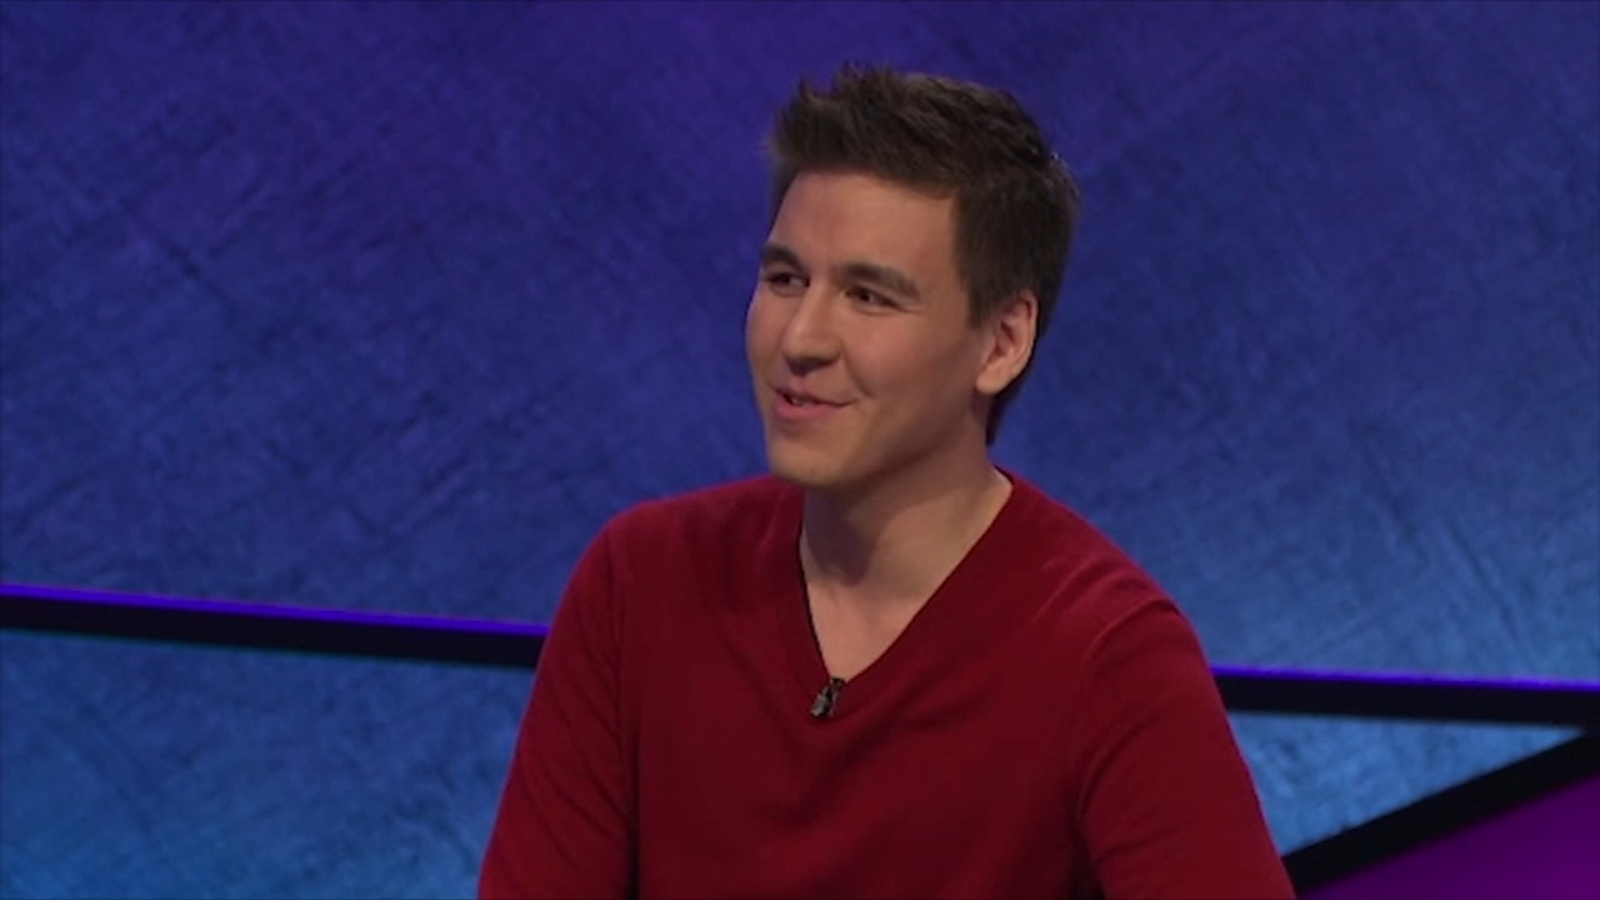 Naperville North Alum captures his 11th straight win on Jeopardy!